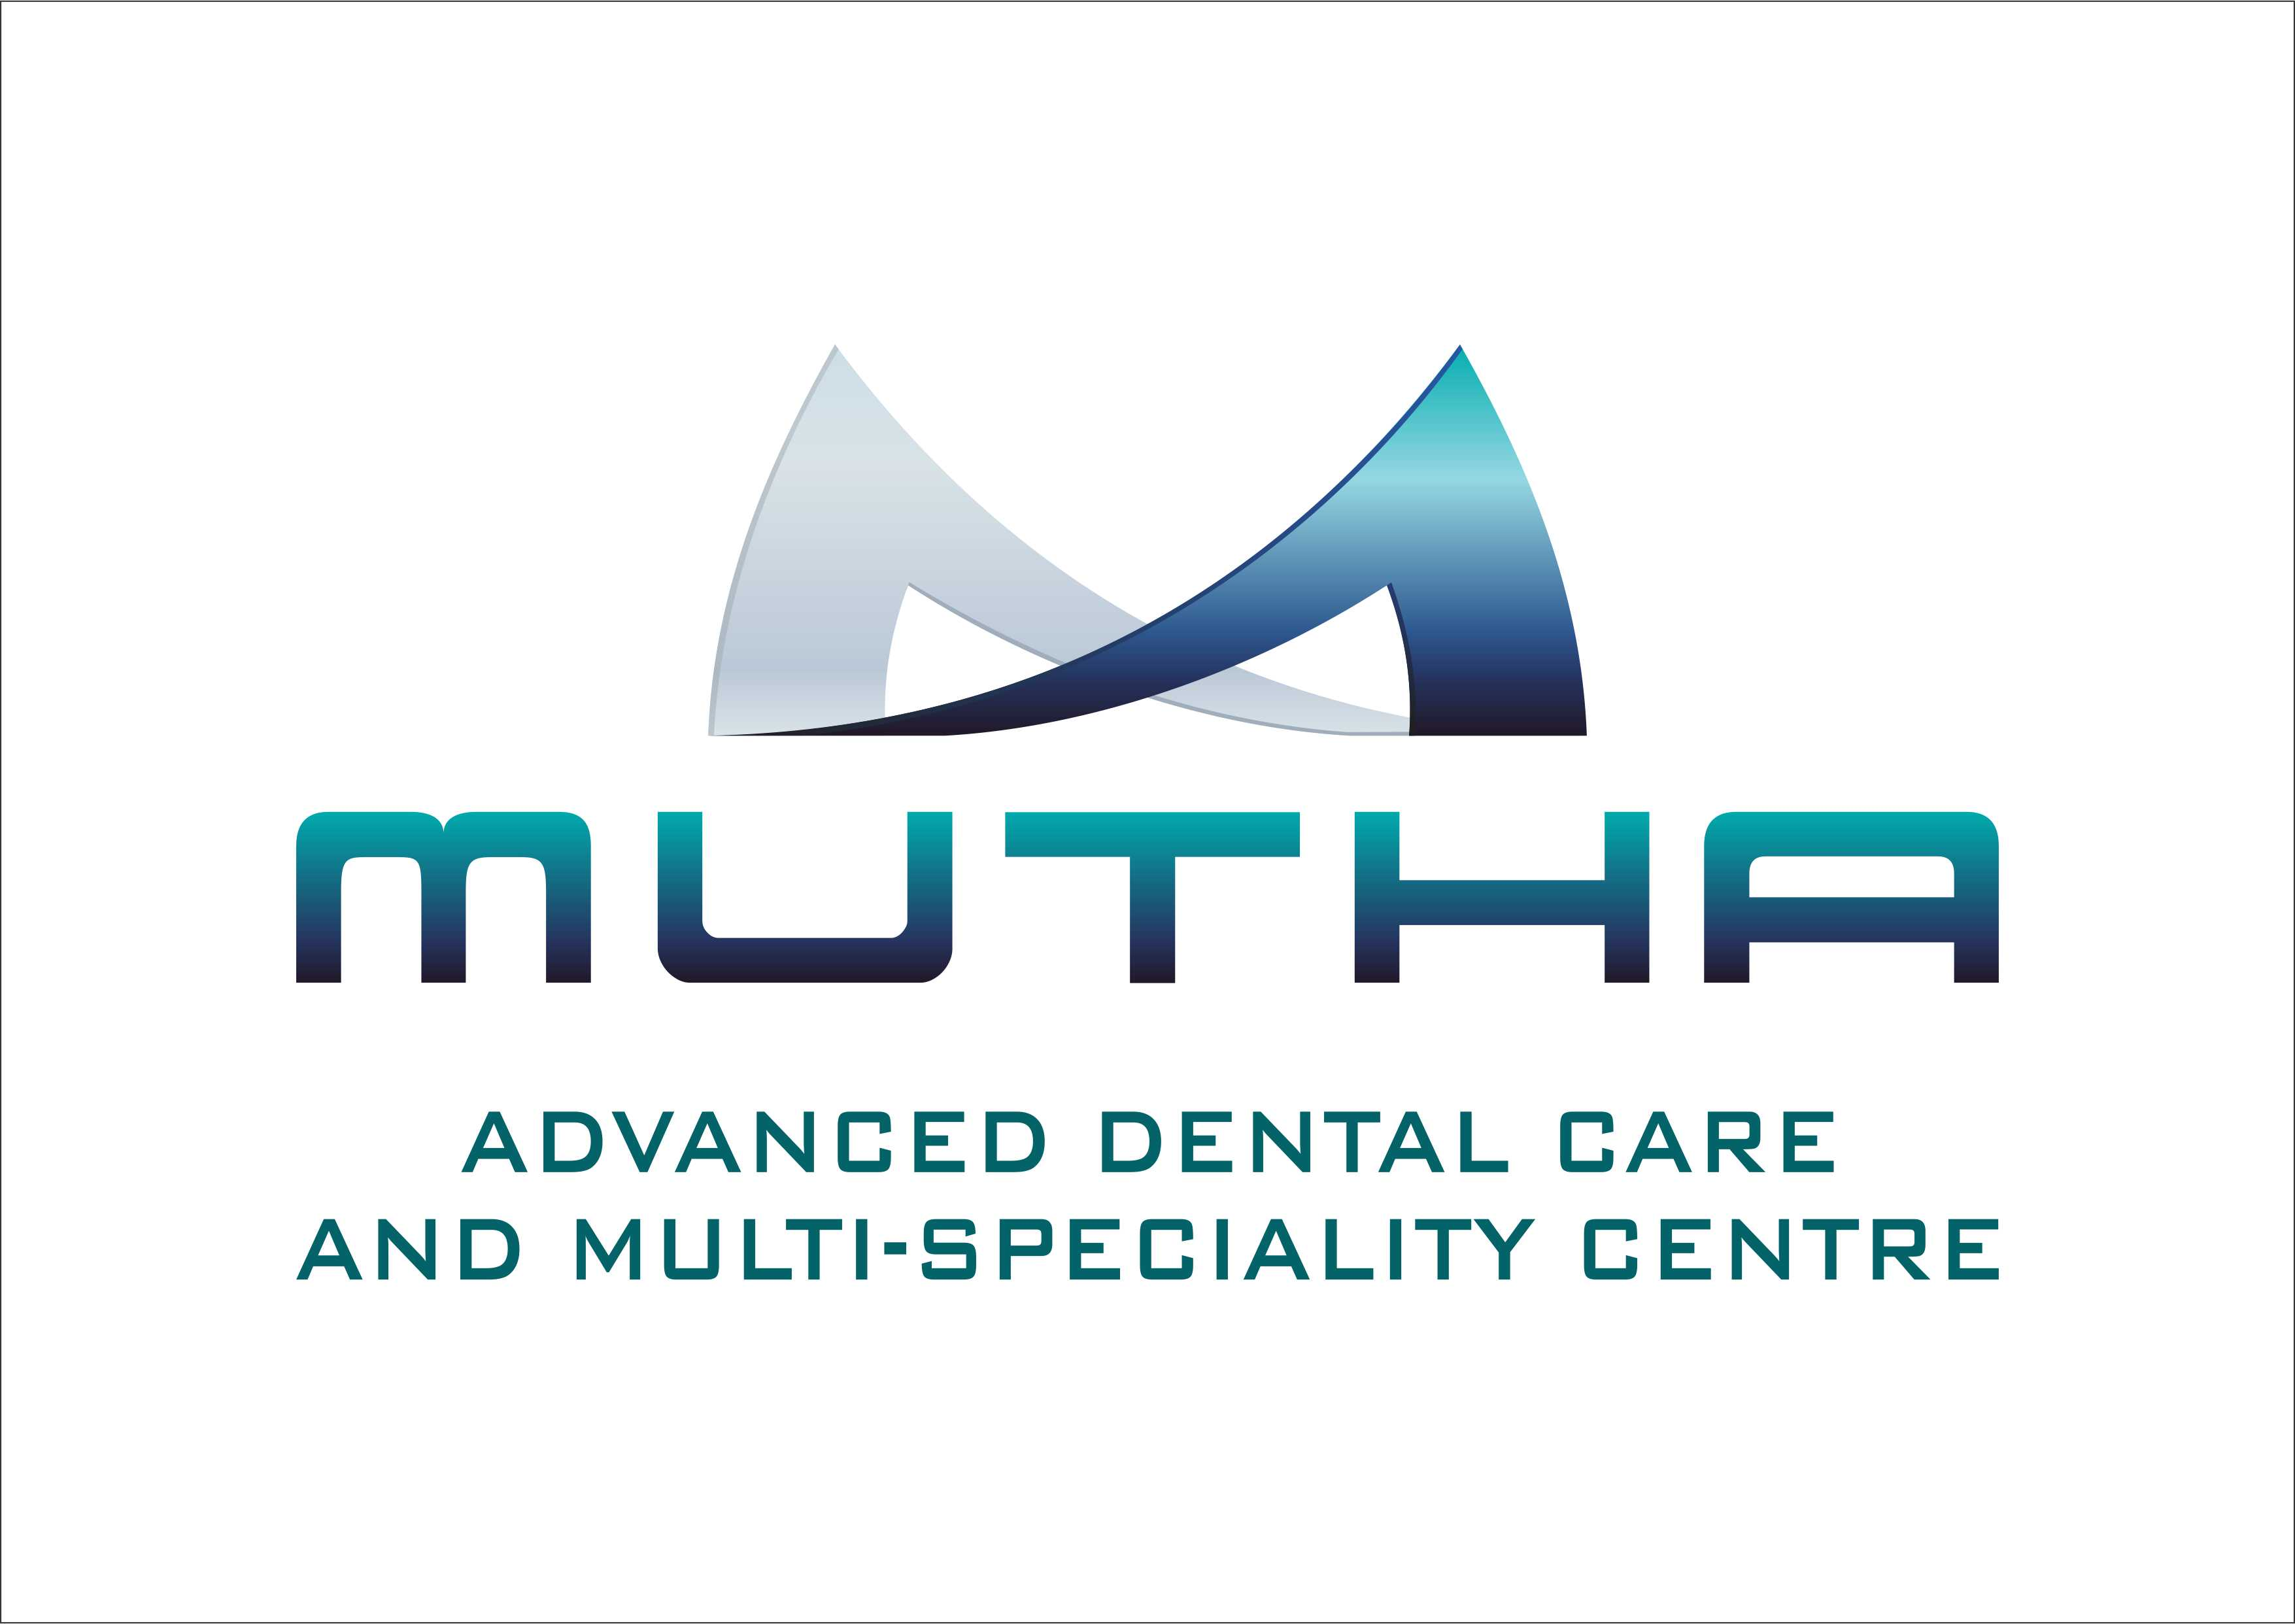 Mutha's Advance Dental Care and Mulitispeciality Centre